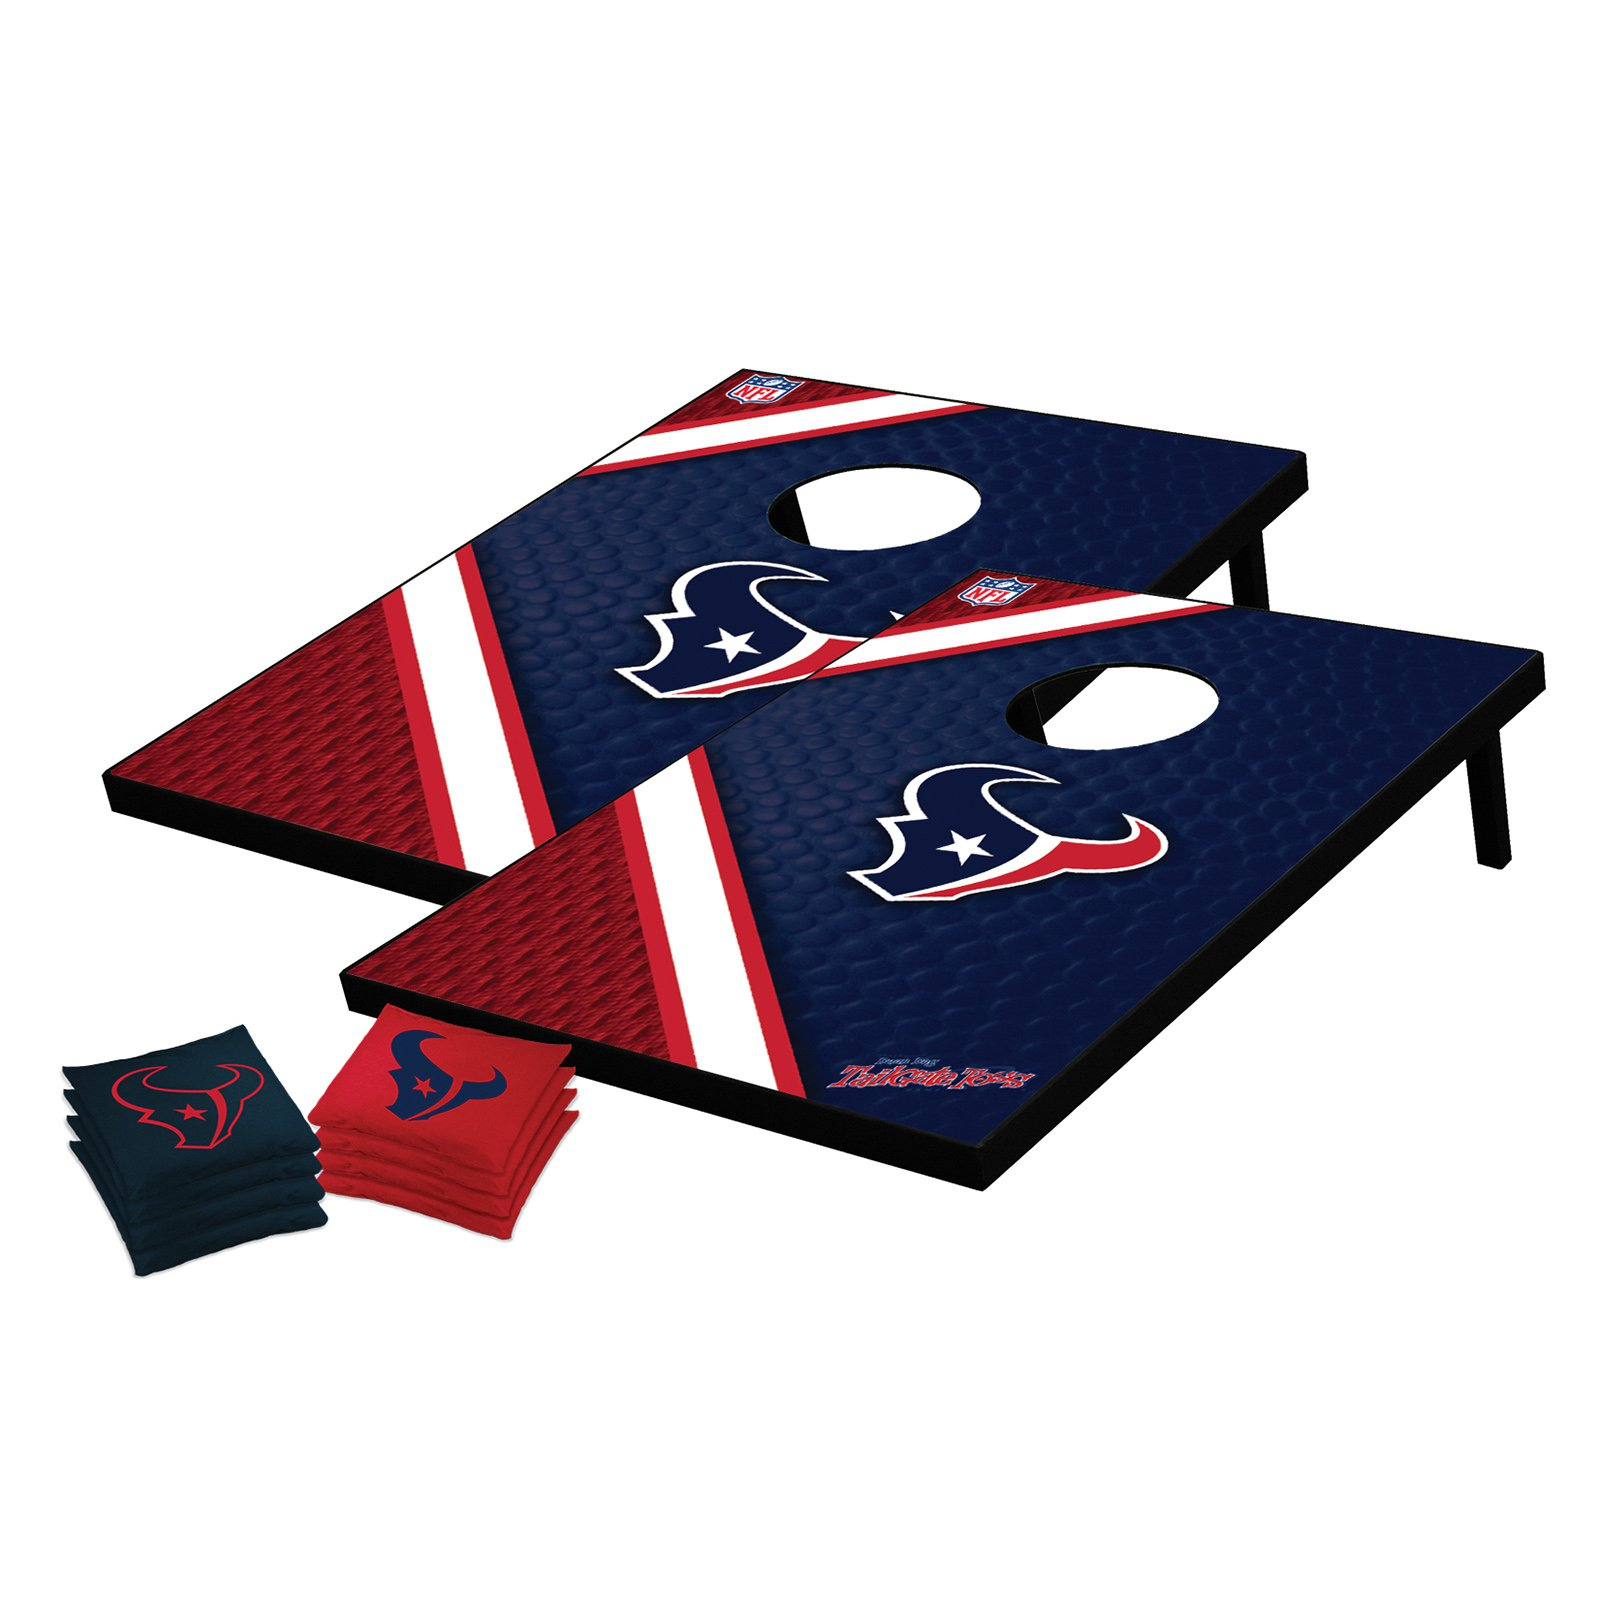 Wild Sports Tailgate NFL Toss Bean Bag Game Set